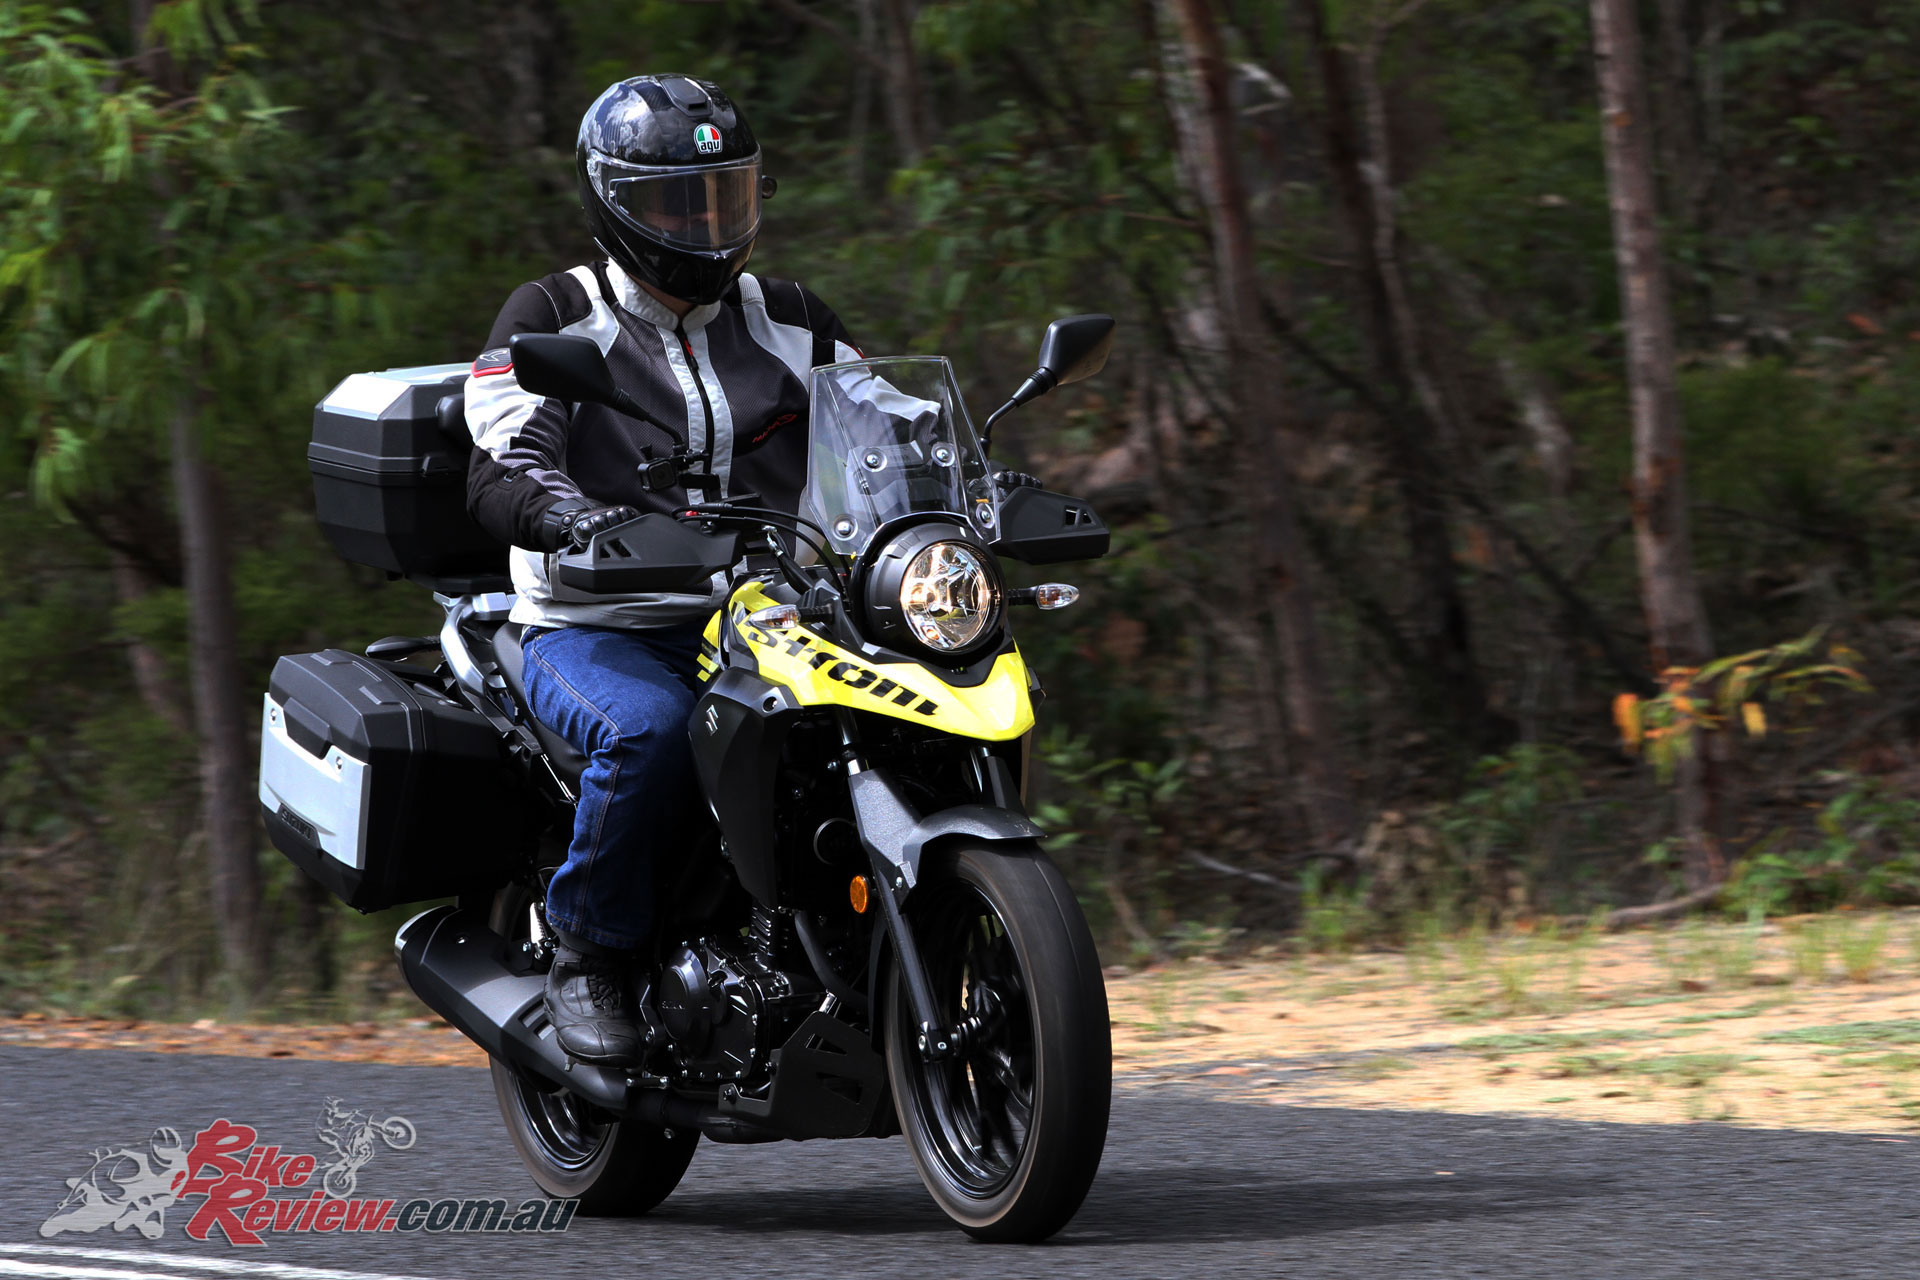 The V-Strom 250 is a real winner when it comes to offering an ideal beginner package